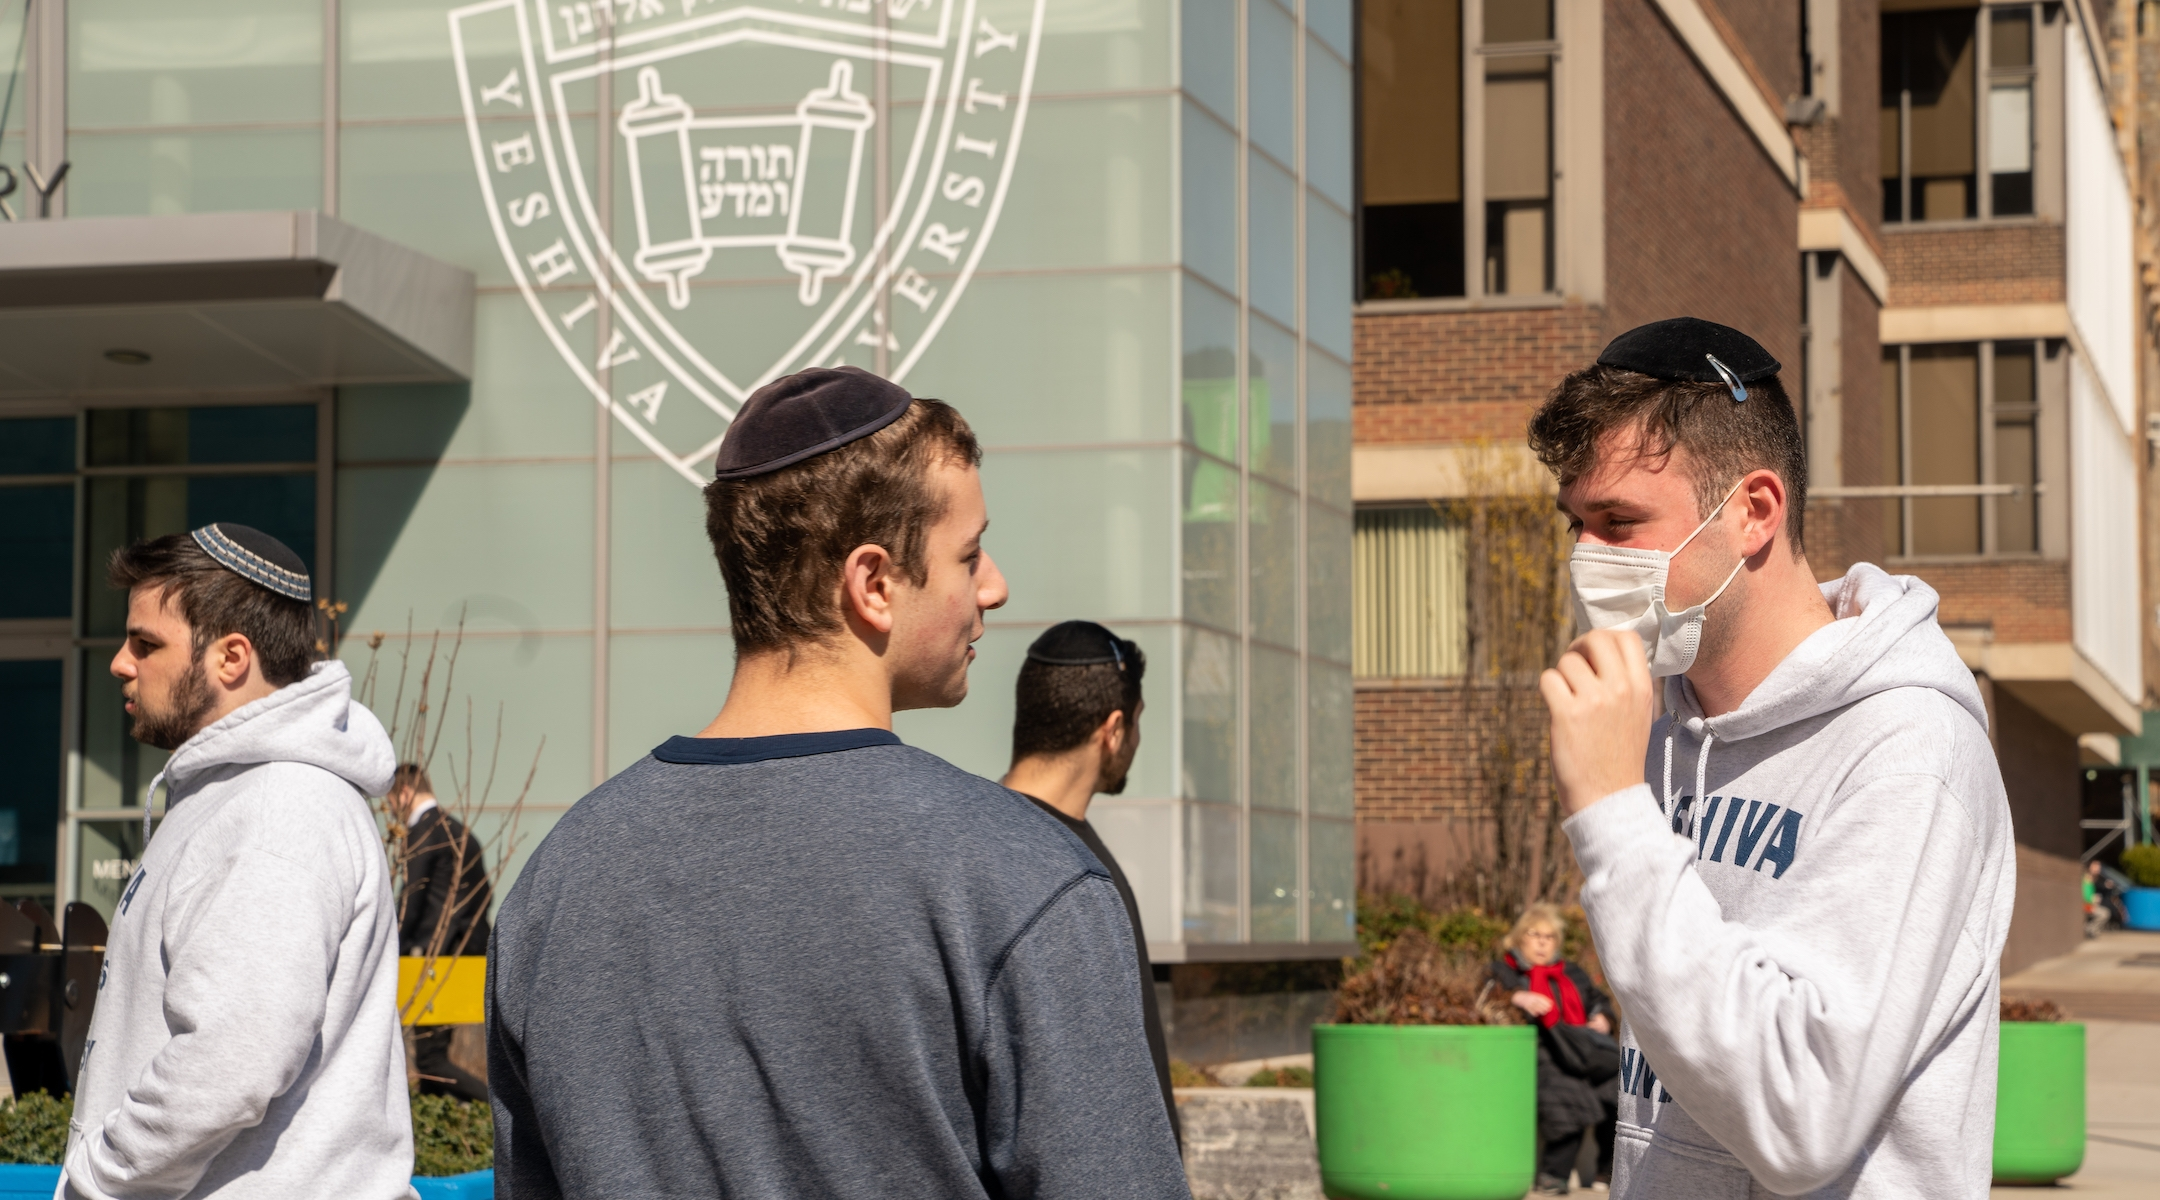 Yeshiva University plans to eliminate in-person Hebrew courses indefinitely